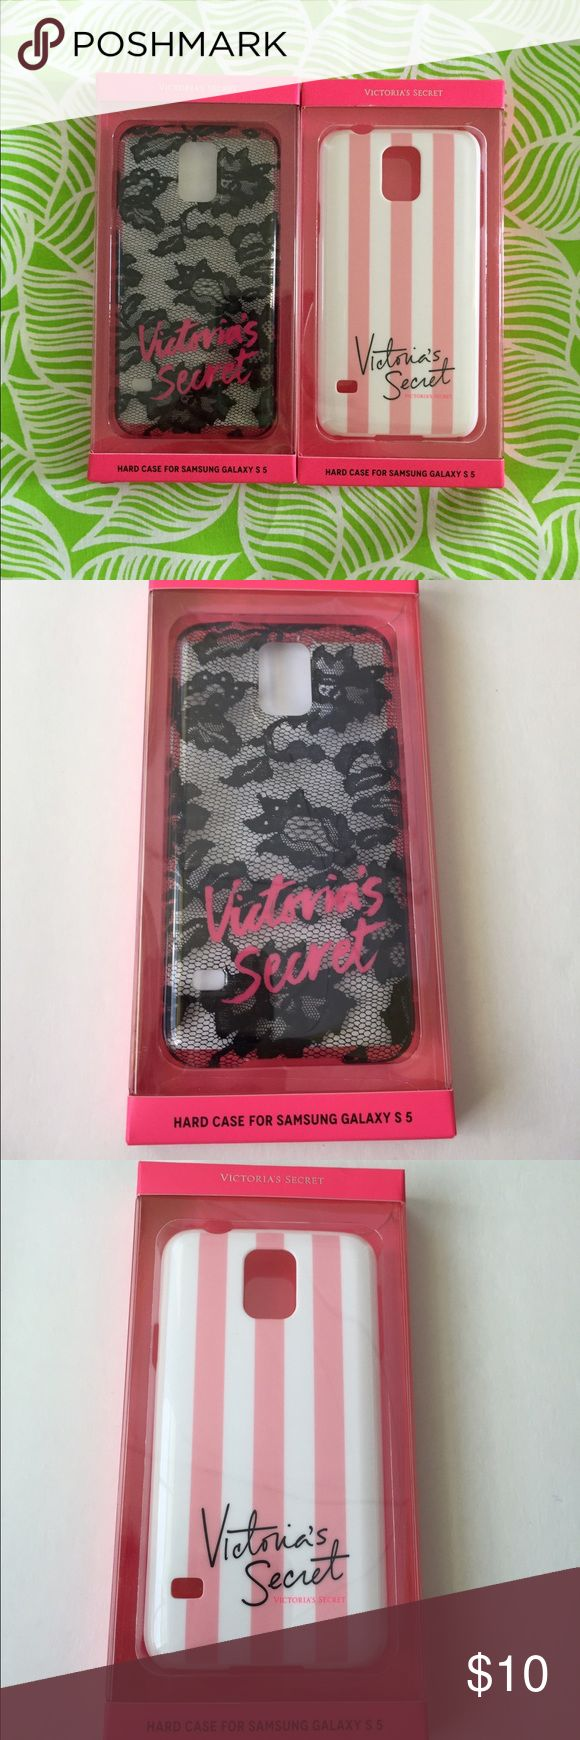 2 Victoria Secret Galaxy S5 phone case 2 New in box Victoria Secret Samsung Galaxy S5 phone hard case.  This is for Galaxy S 5.    trades Victoria's Secret Accessories Phone Cases